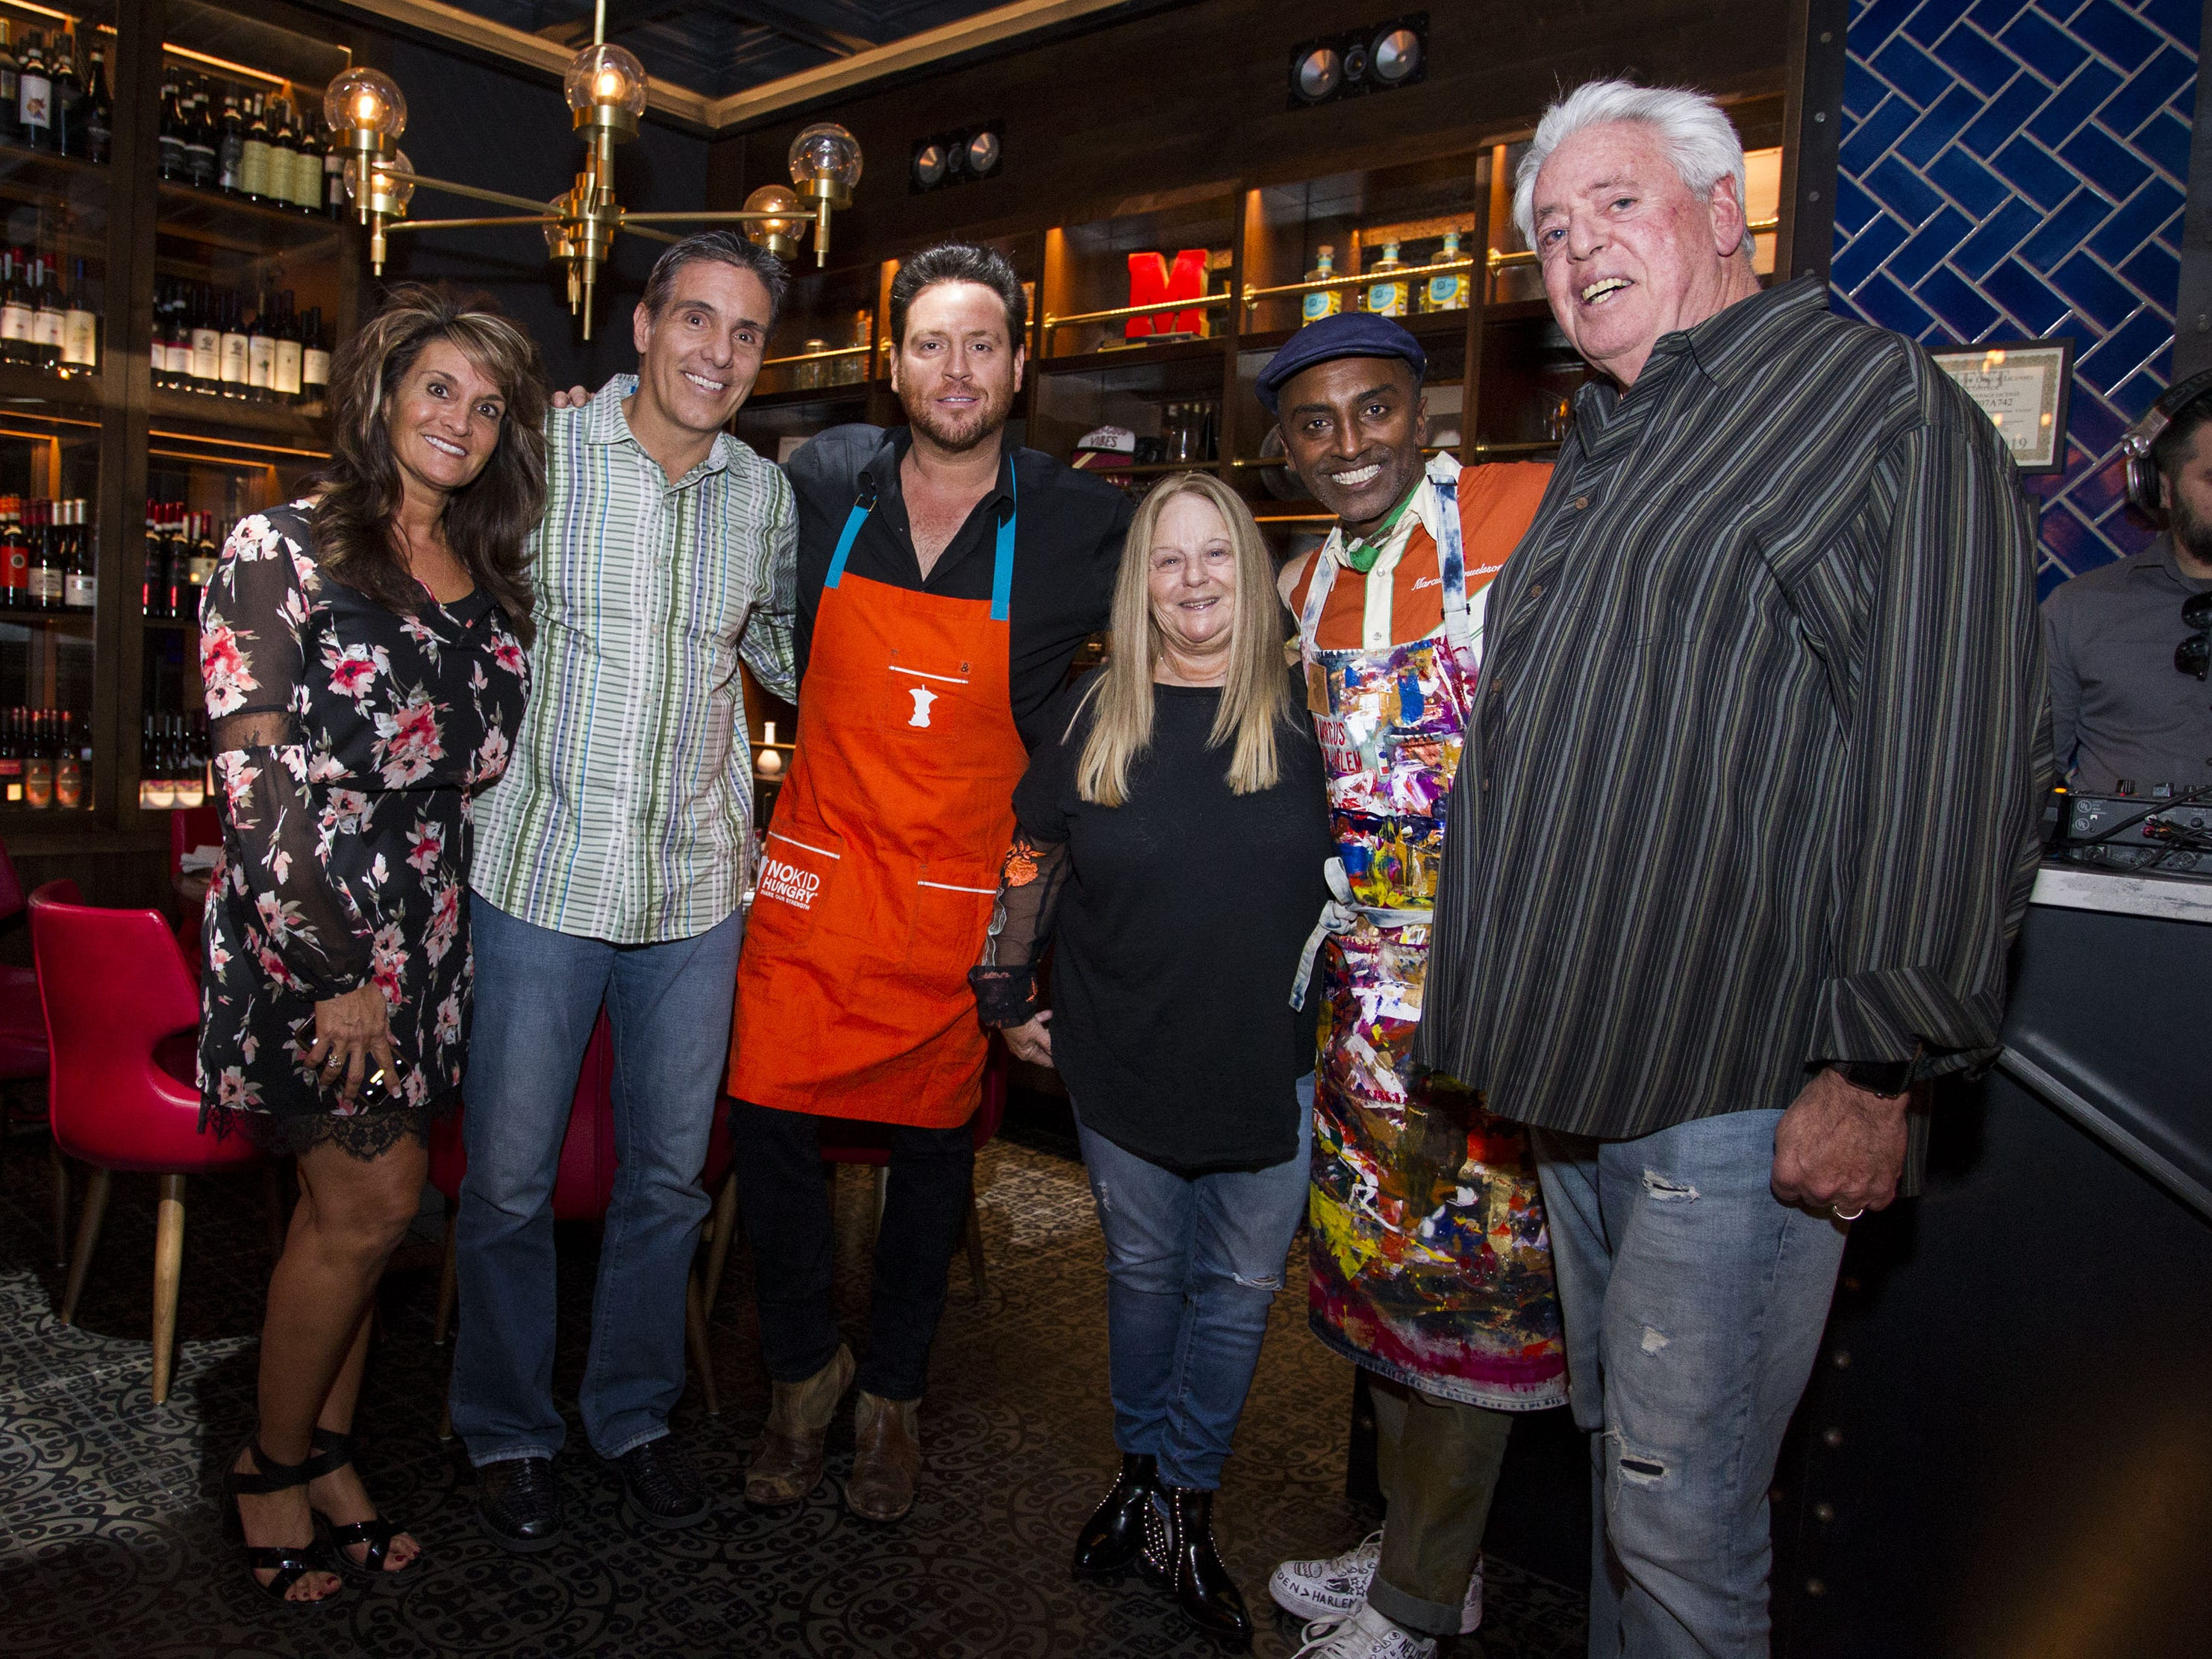 Chefs Scott Conant and Marcus Samuelsson pose for a photo with Kerri and John Lombardi (left) and Judy and Rob Miller (right) during the exclusive kickoff dining event at Mora Italian for azcentral Wine & Food Experience.